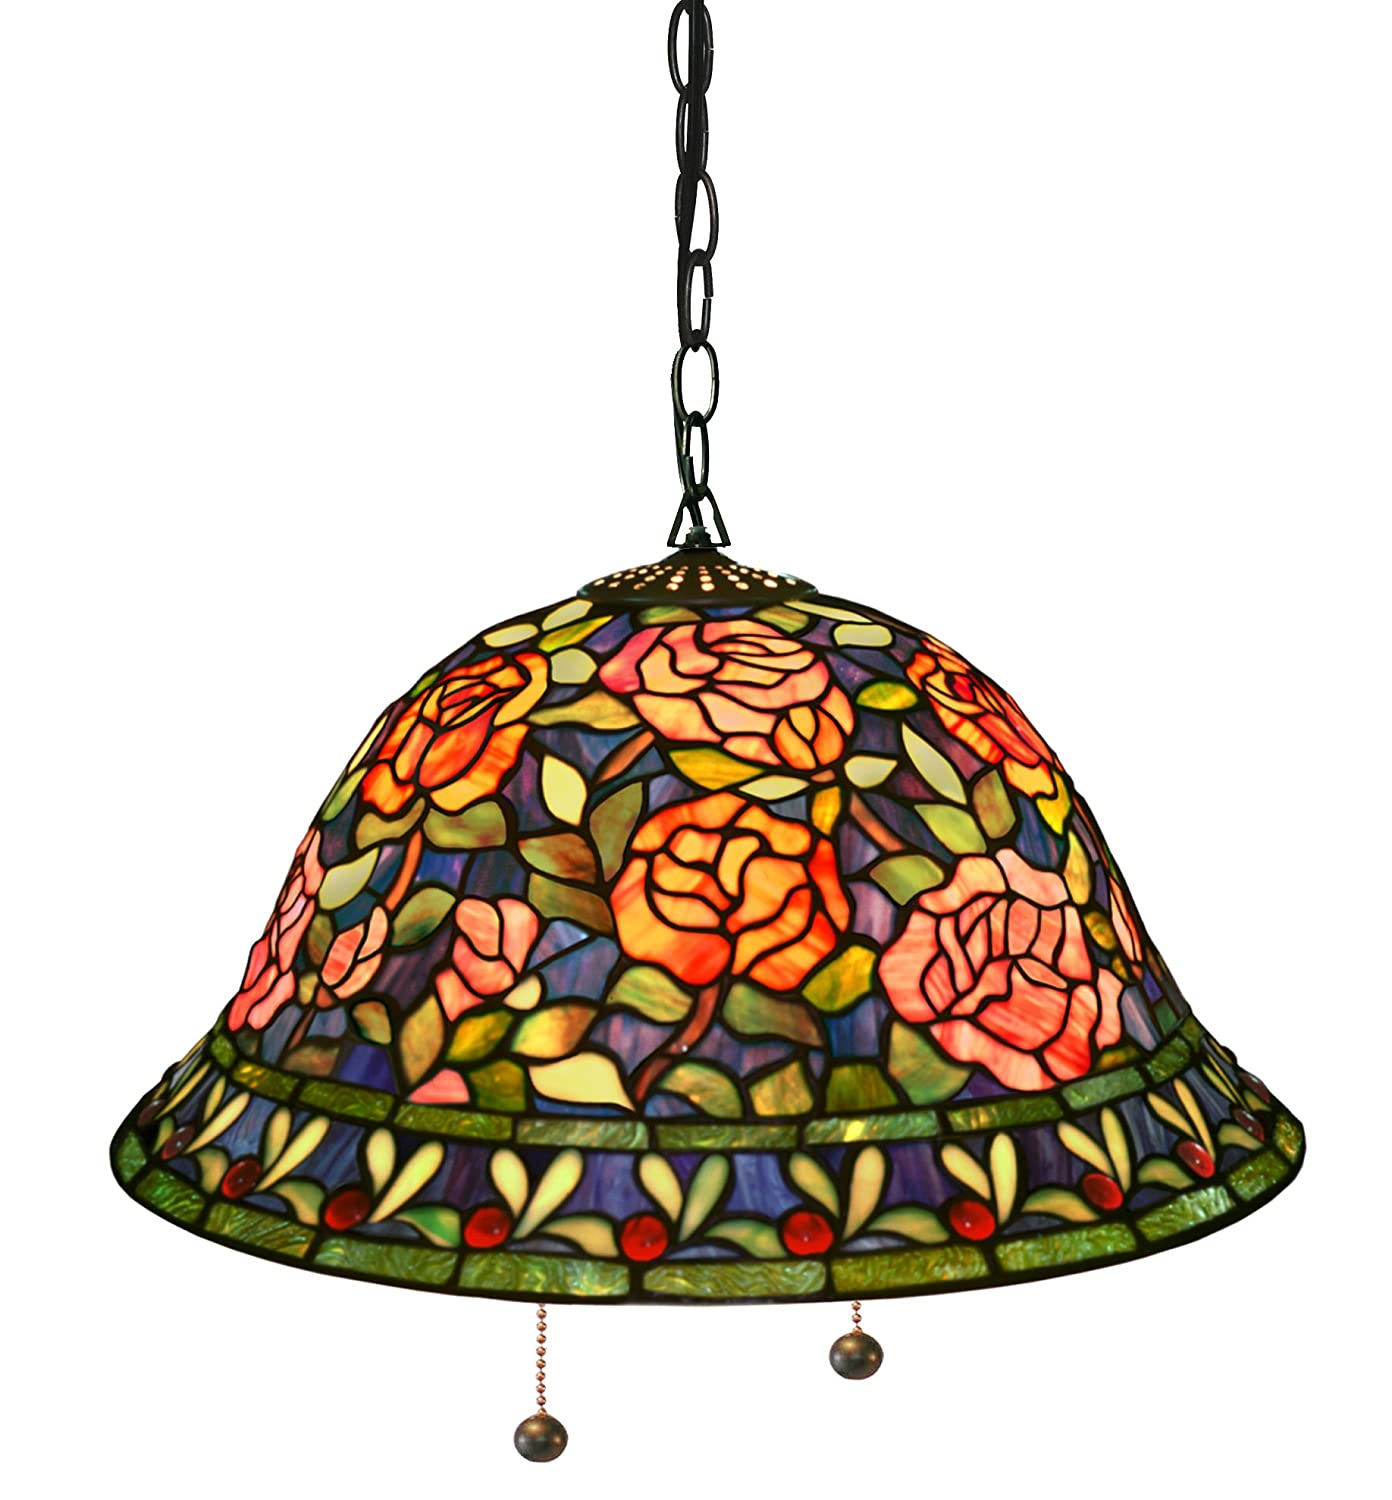 studios lighting wonderfull back rare leaded style of backquot lantern tiffany light turtle world and beautiful pendant quotturtle glass a